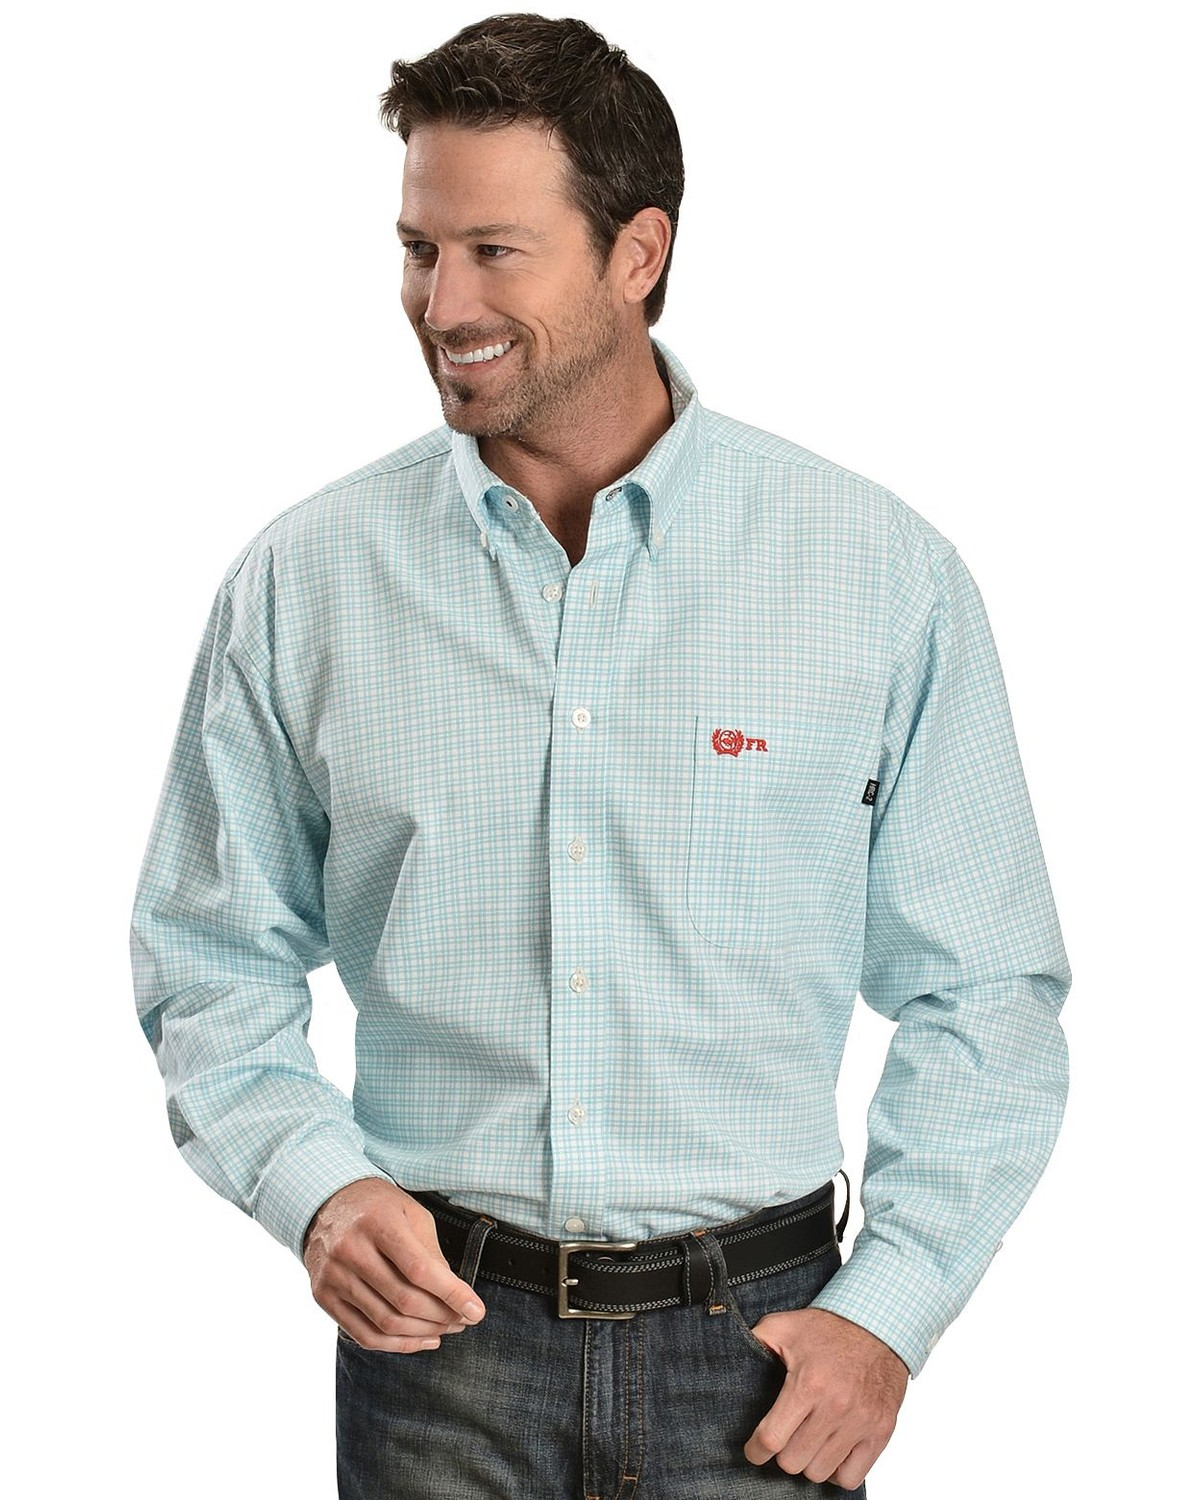 Cinch flame resistant plaid work shirt sheplers for Cinch flame resistant shirts